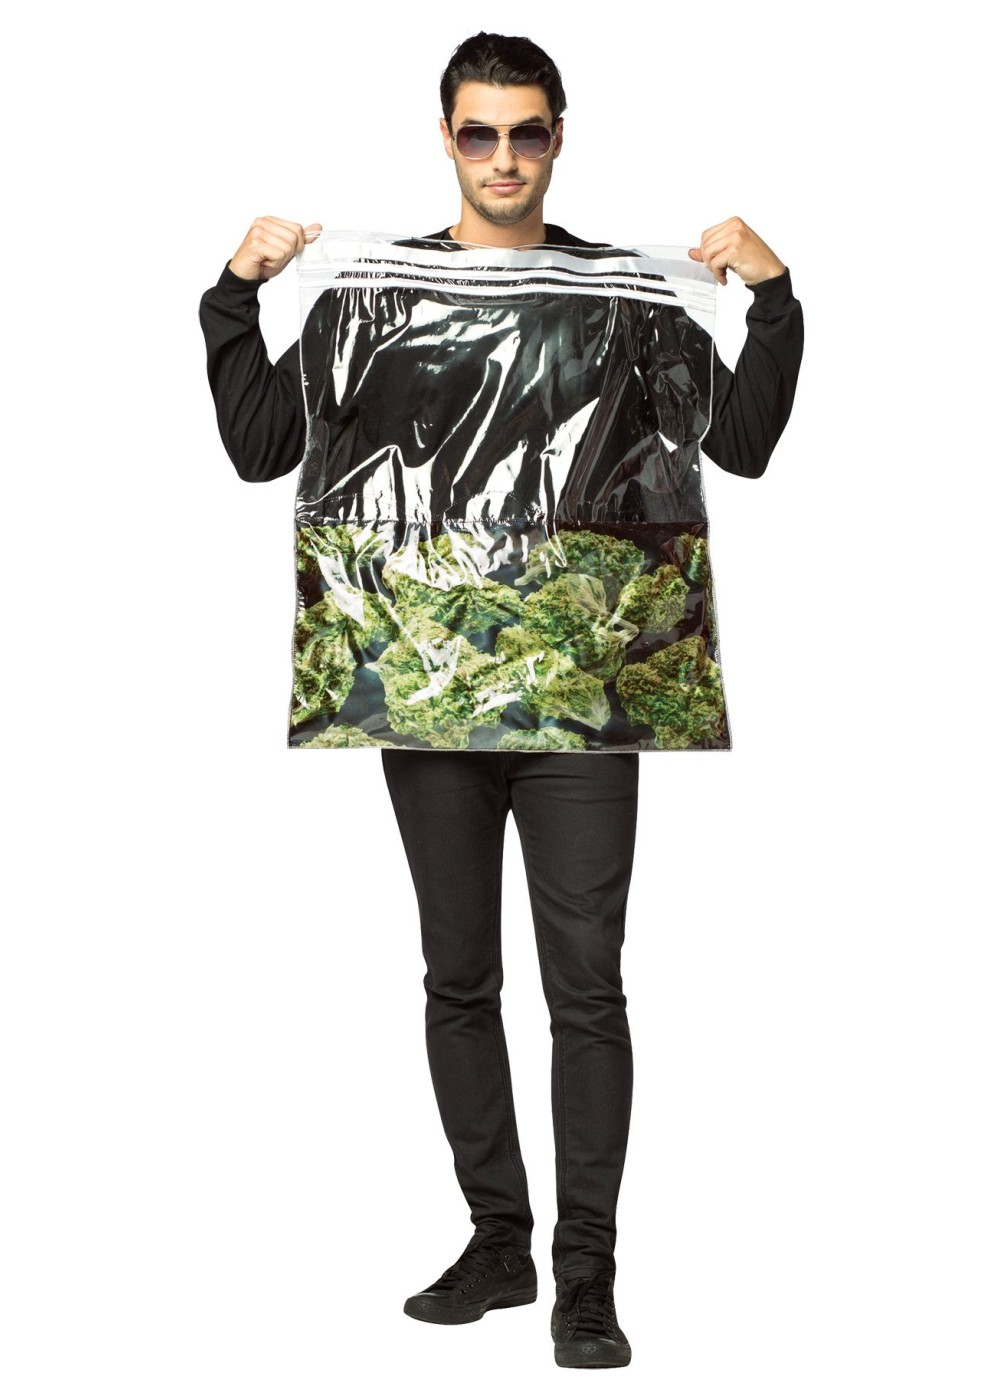 Bag Of Weed Costume Funny Costumes